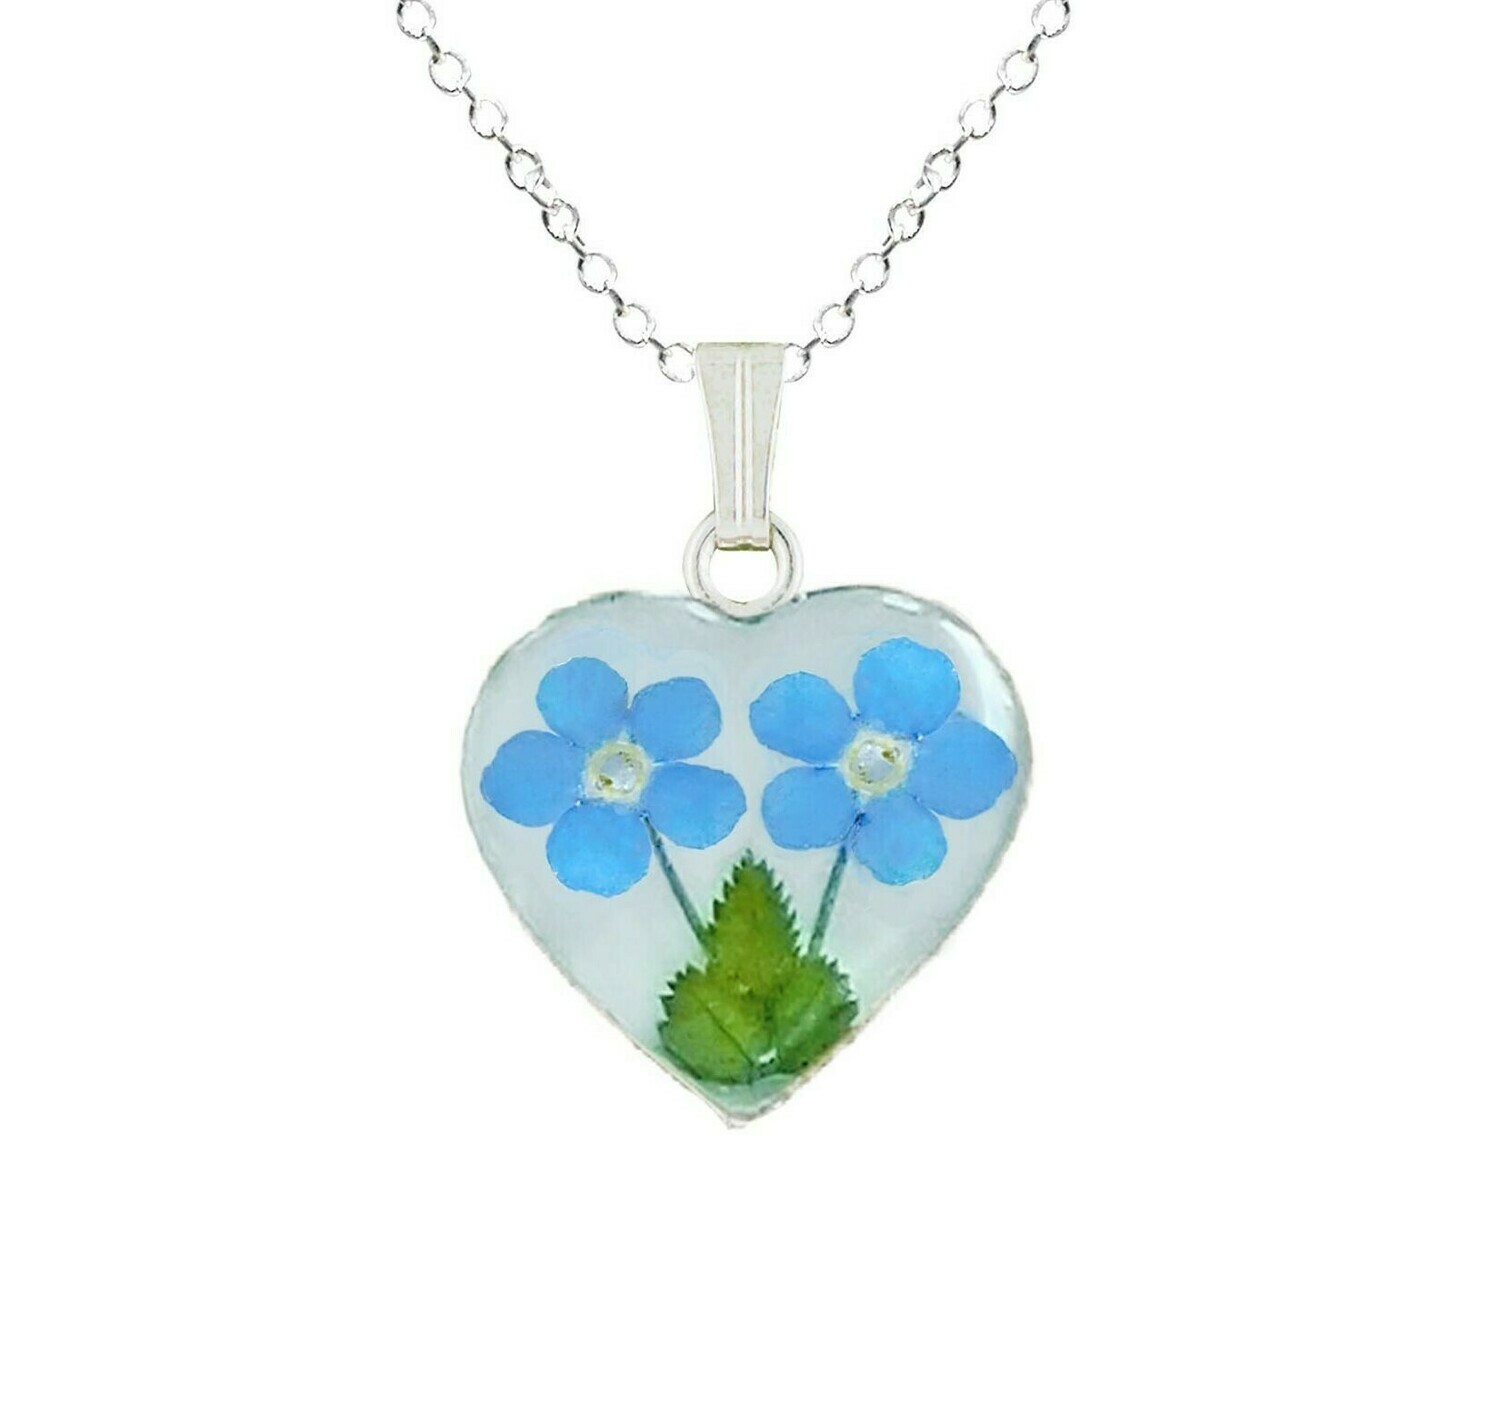 Forget-Me-Not Necklace, Medium Heart, White Background